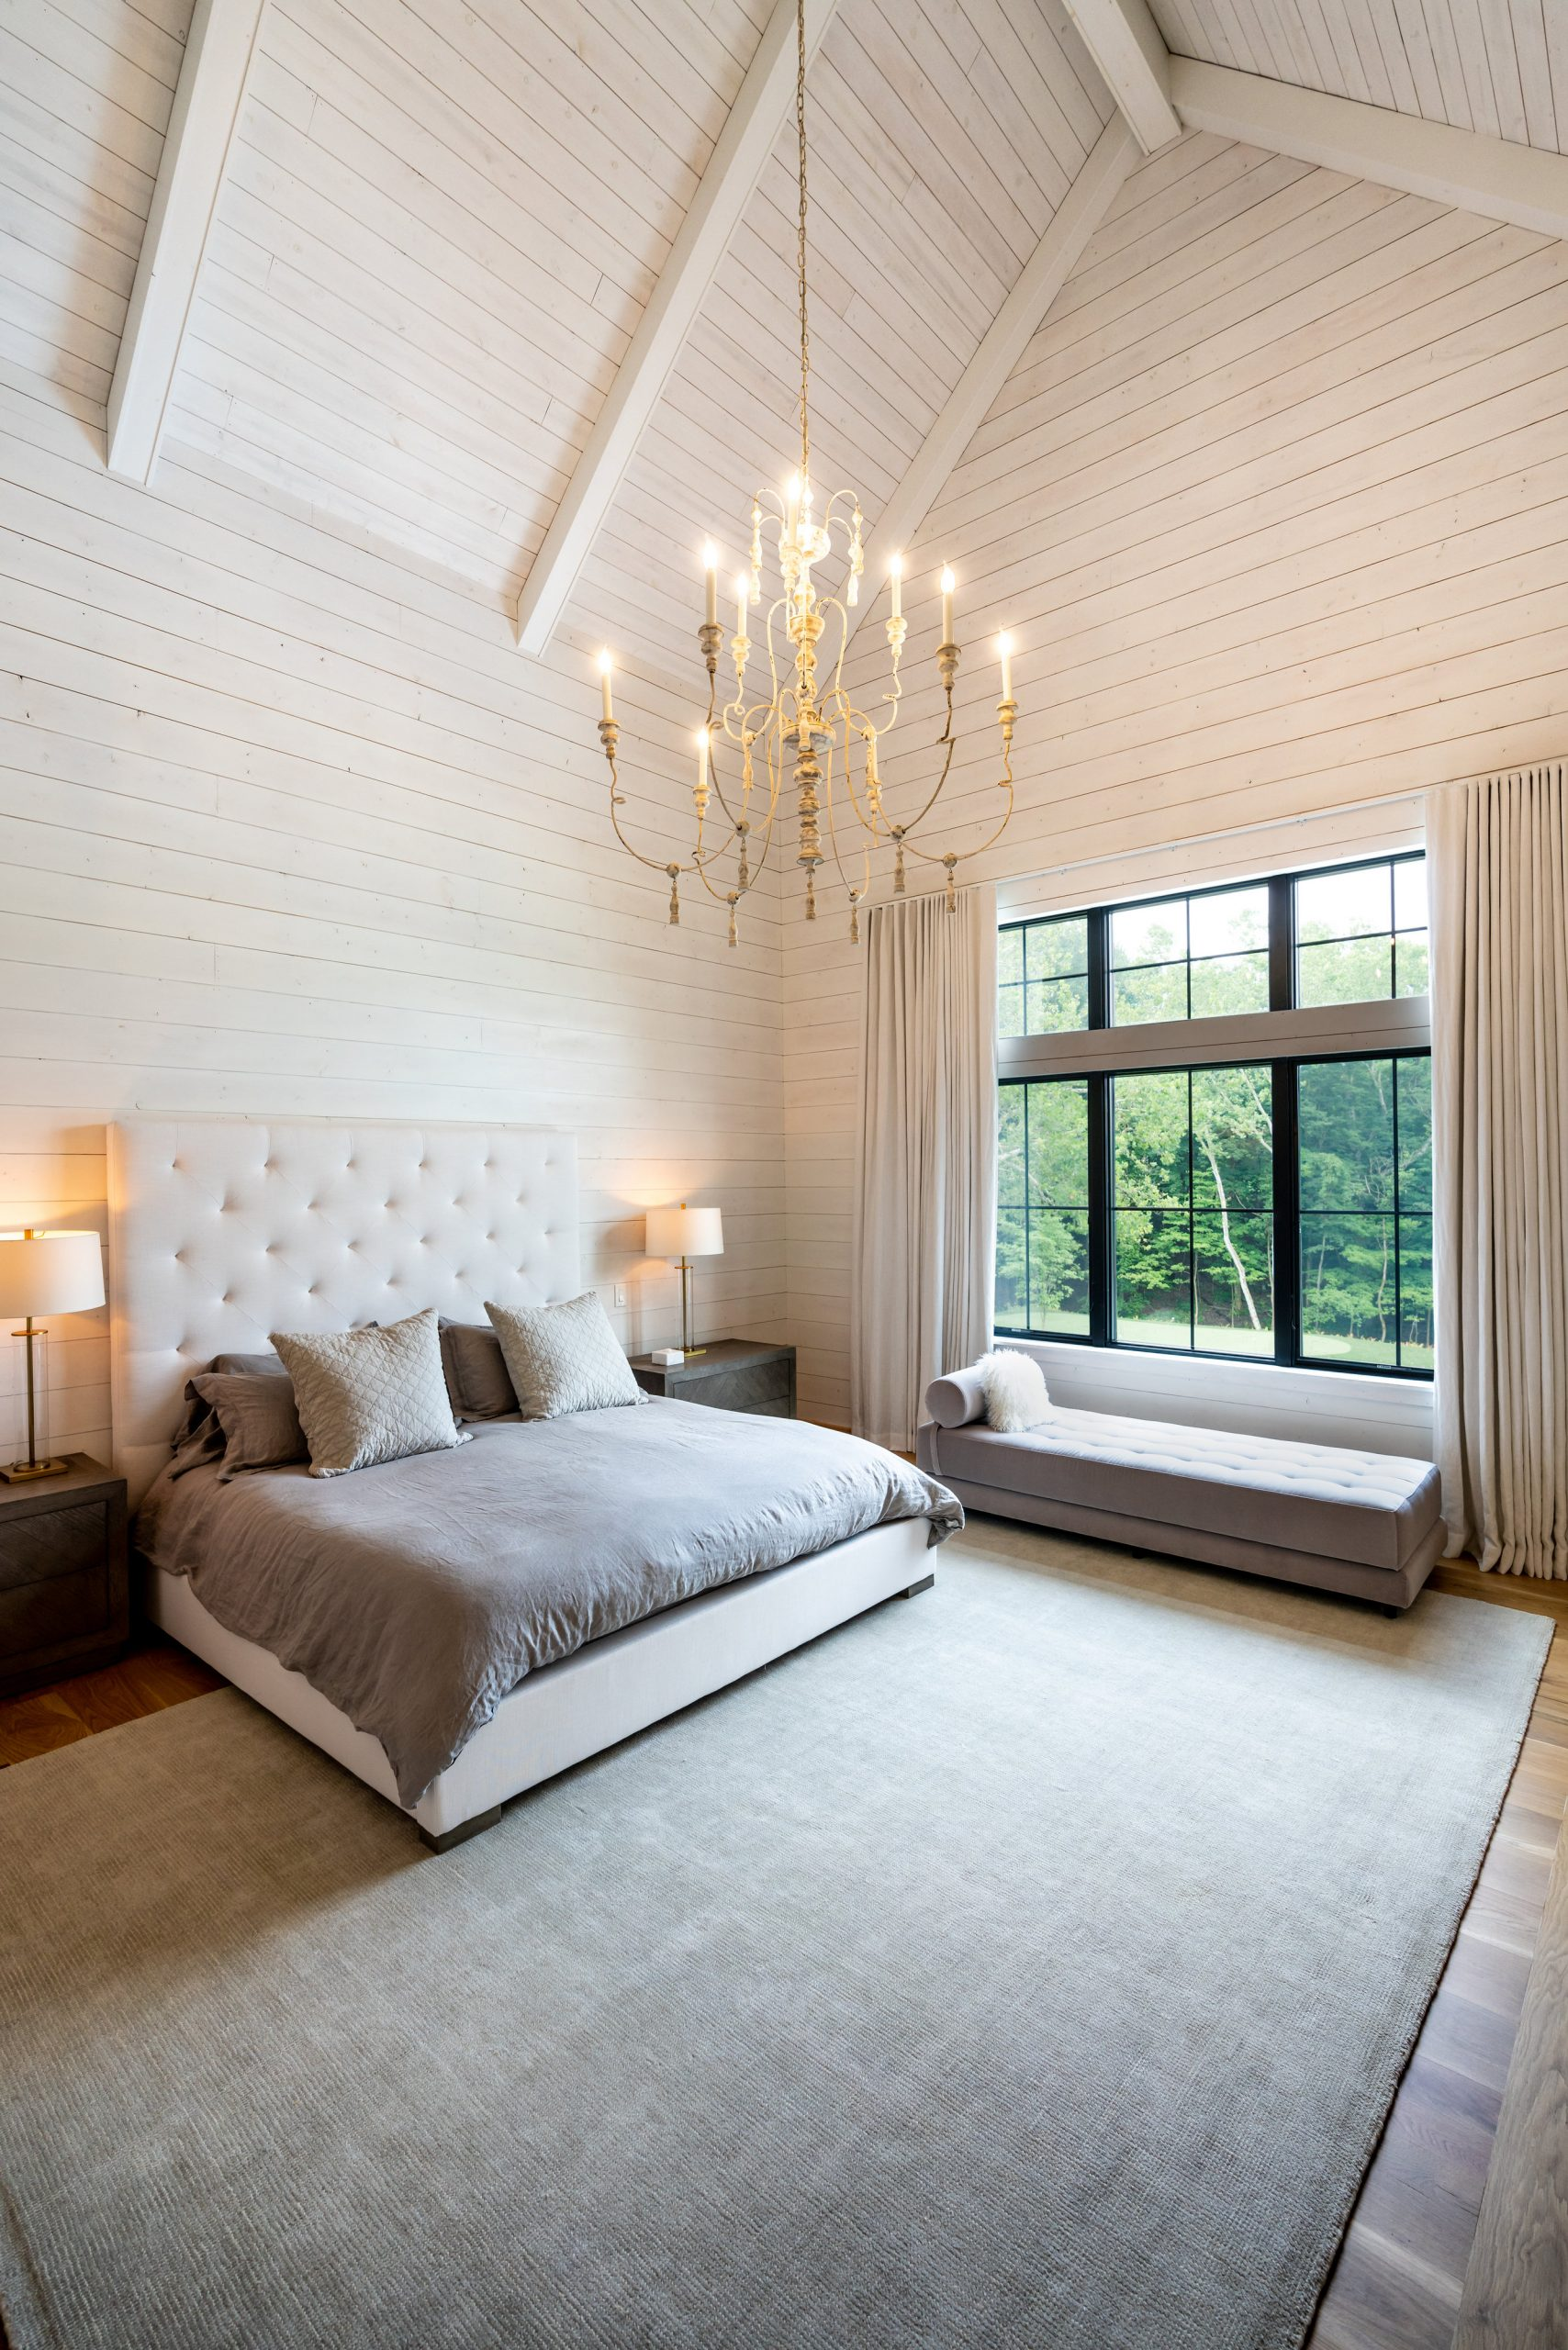 professional photo of a master bedroom